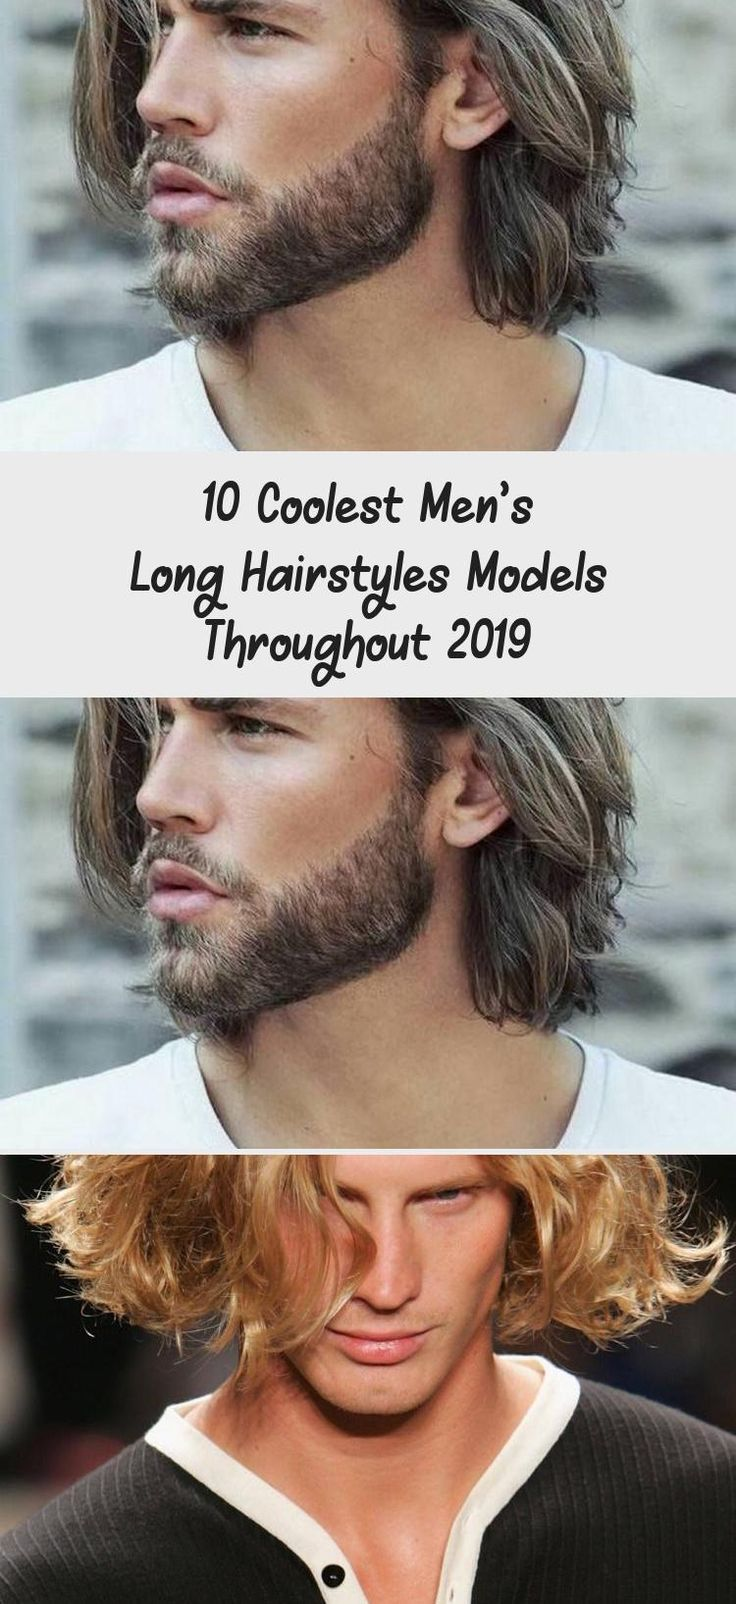 Best 10 Coolest Men's Long Hairstyles Models Throughout 2019 The trend in men's long hairstyles ...